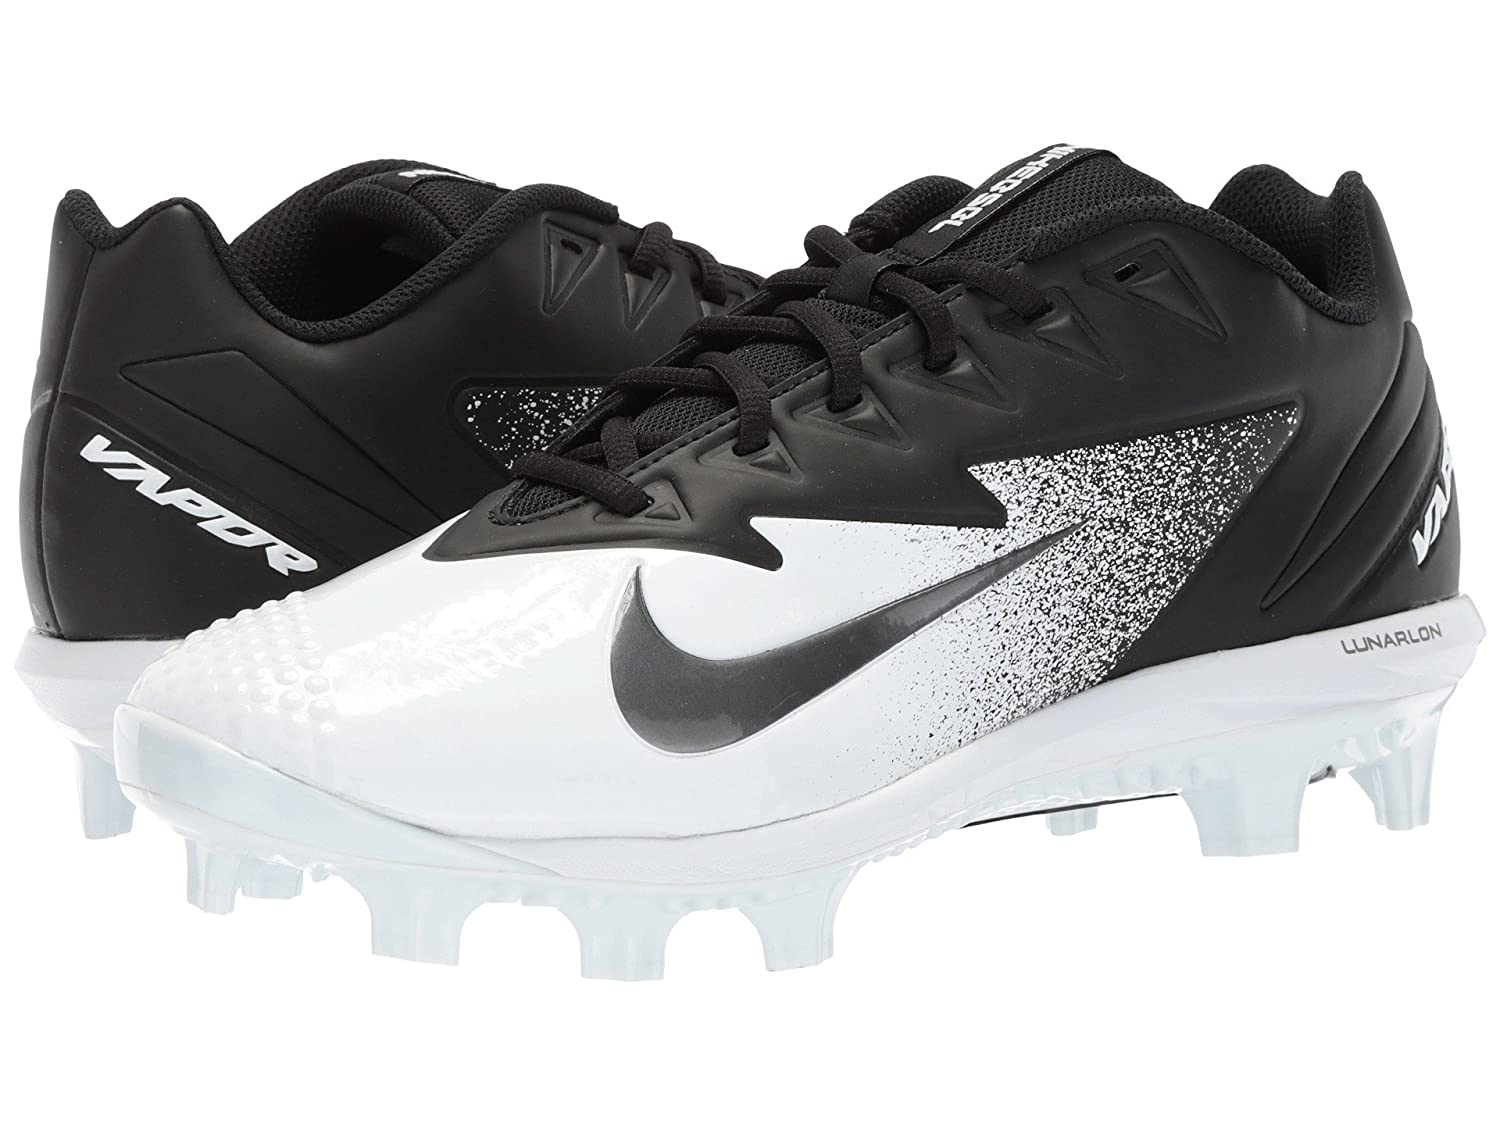 (ナイキ) NIKE メンズ野球ベースボールシューズ靴 Vapor Ultrafly Pro MCS Black/Metallic Silver/White 8.5 (26.5cm) D Medium B078Q2B7YC